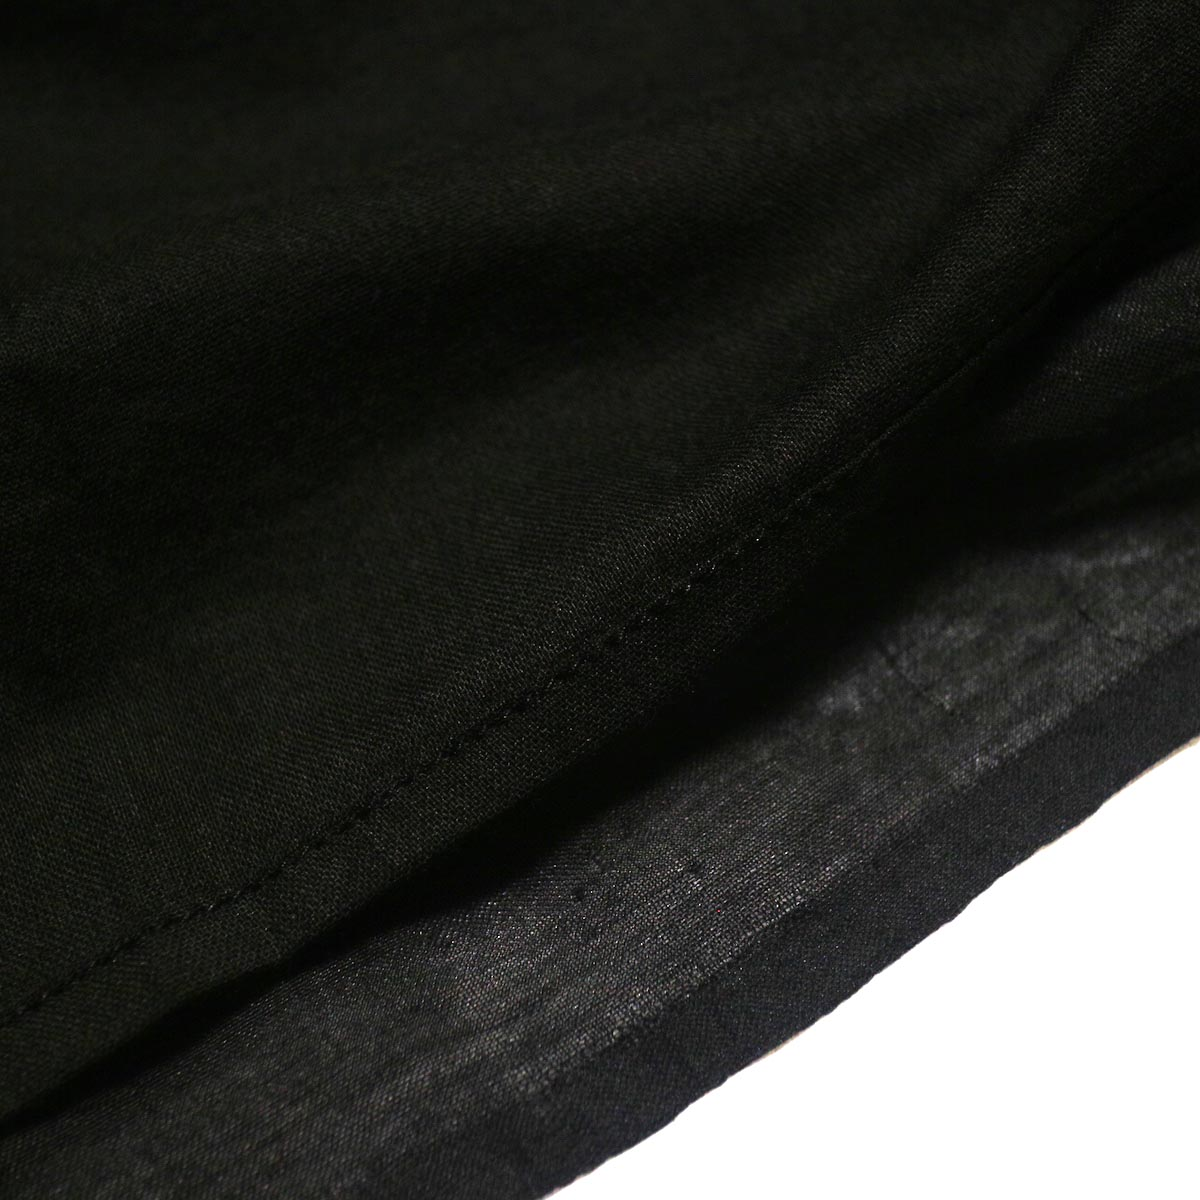 maison de soil / HAND WOVEN COTTON SILK × SILK PLAIN DROP SHOULDER DRESS (black) 裏地